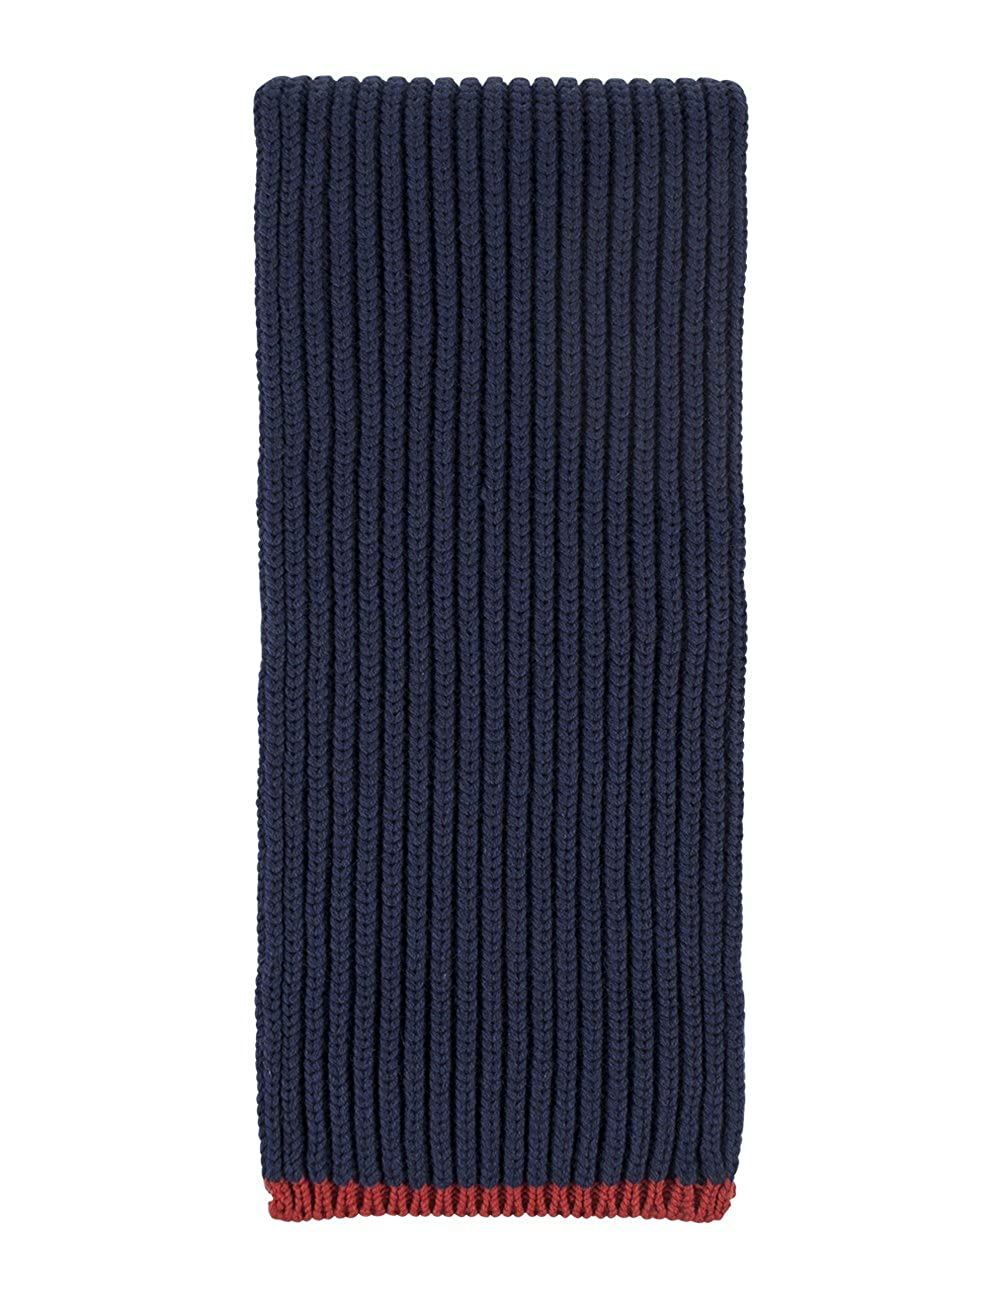 Great and British Knitwear Men's 100% Cashmere Cardigan Knit Scarf. Made In Scotland